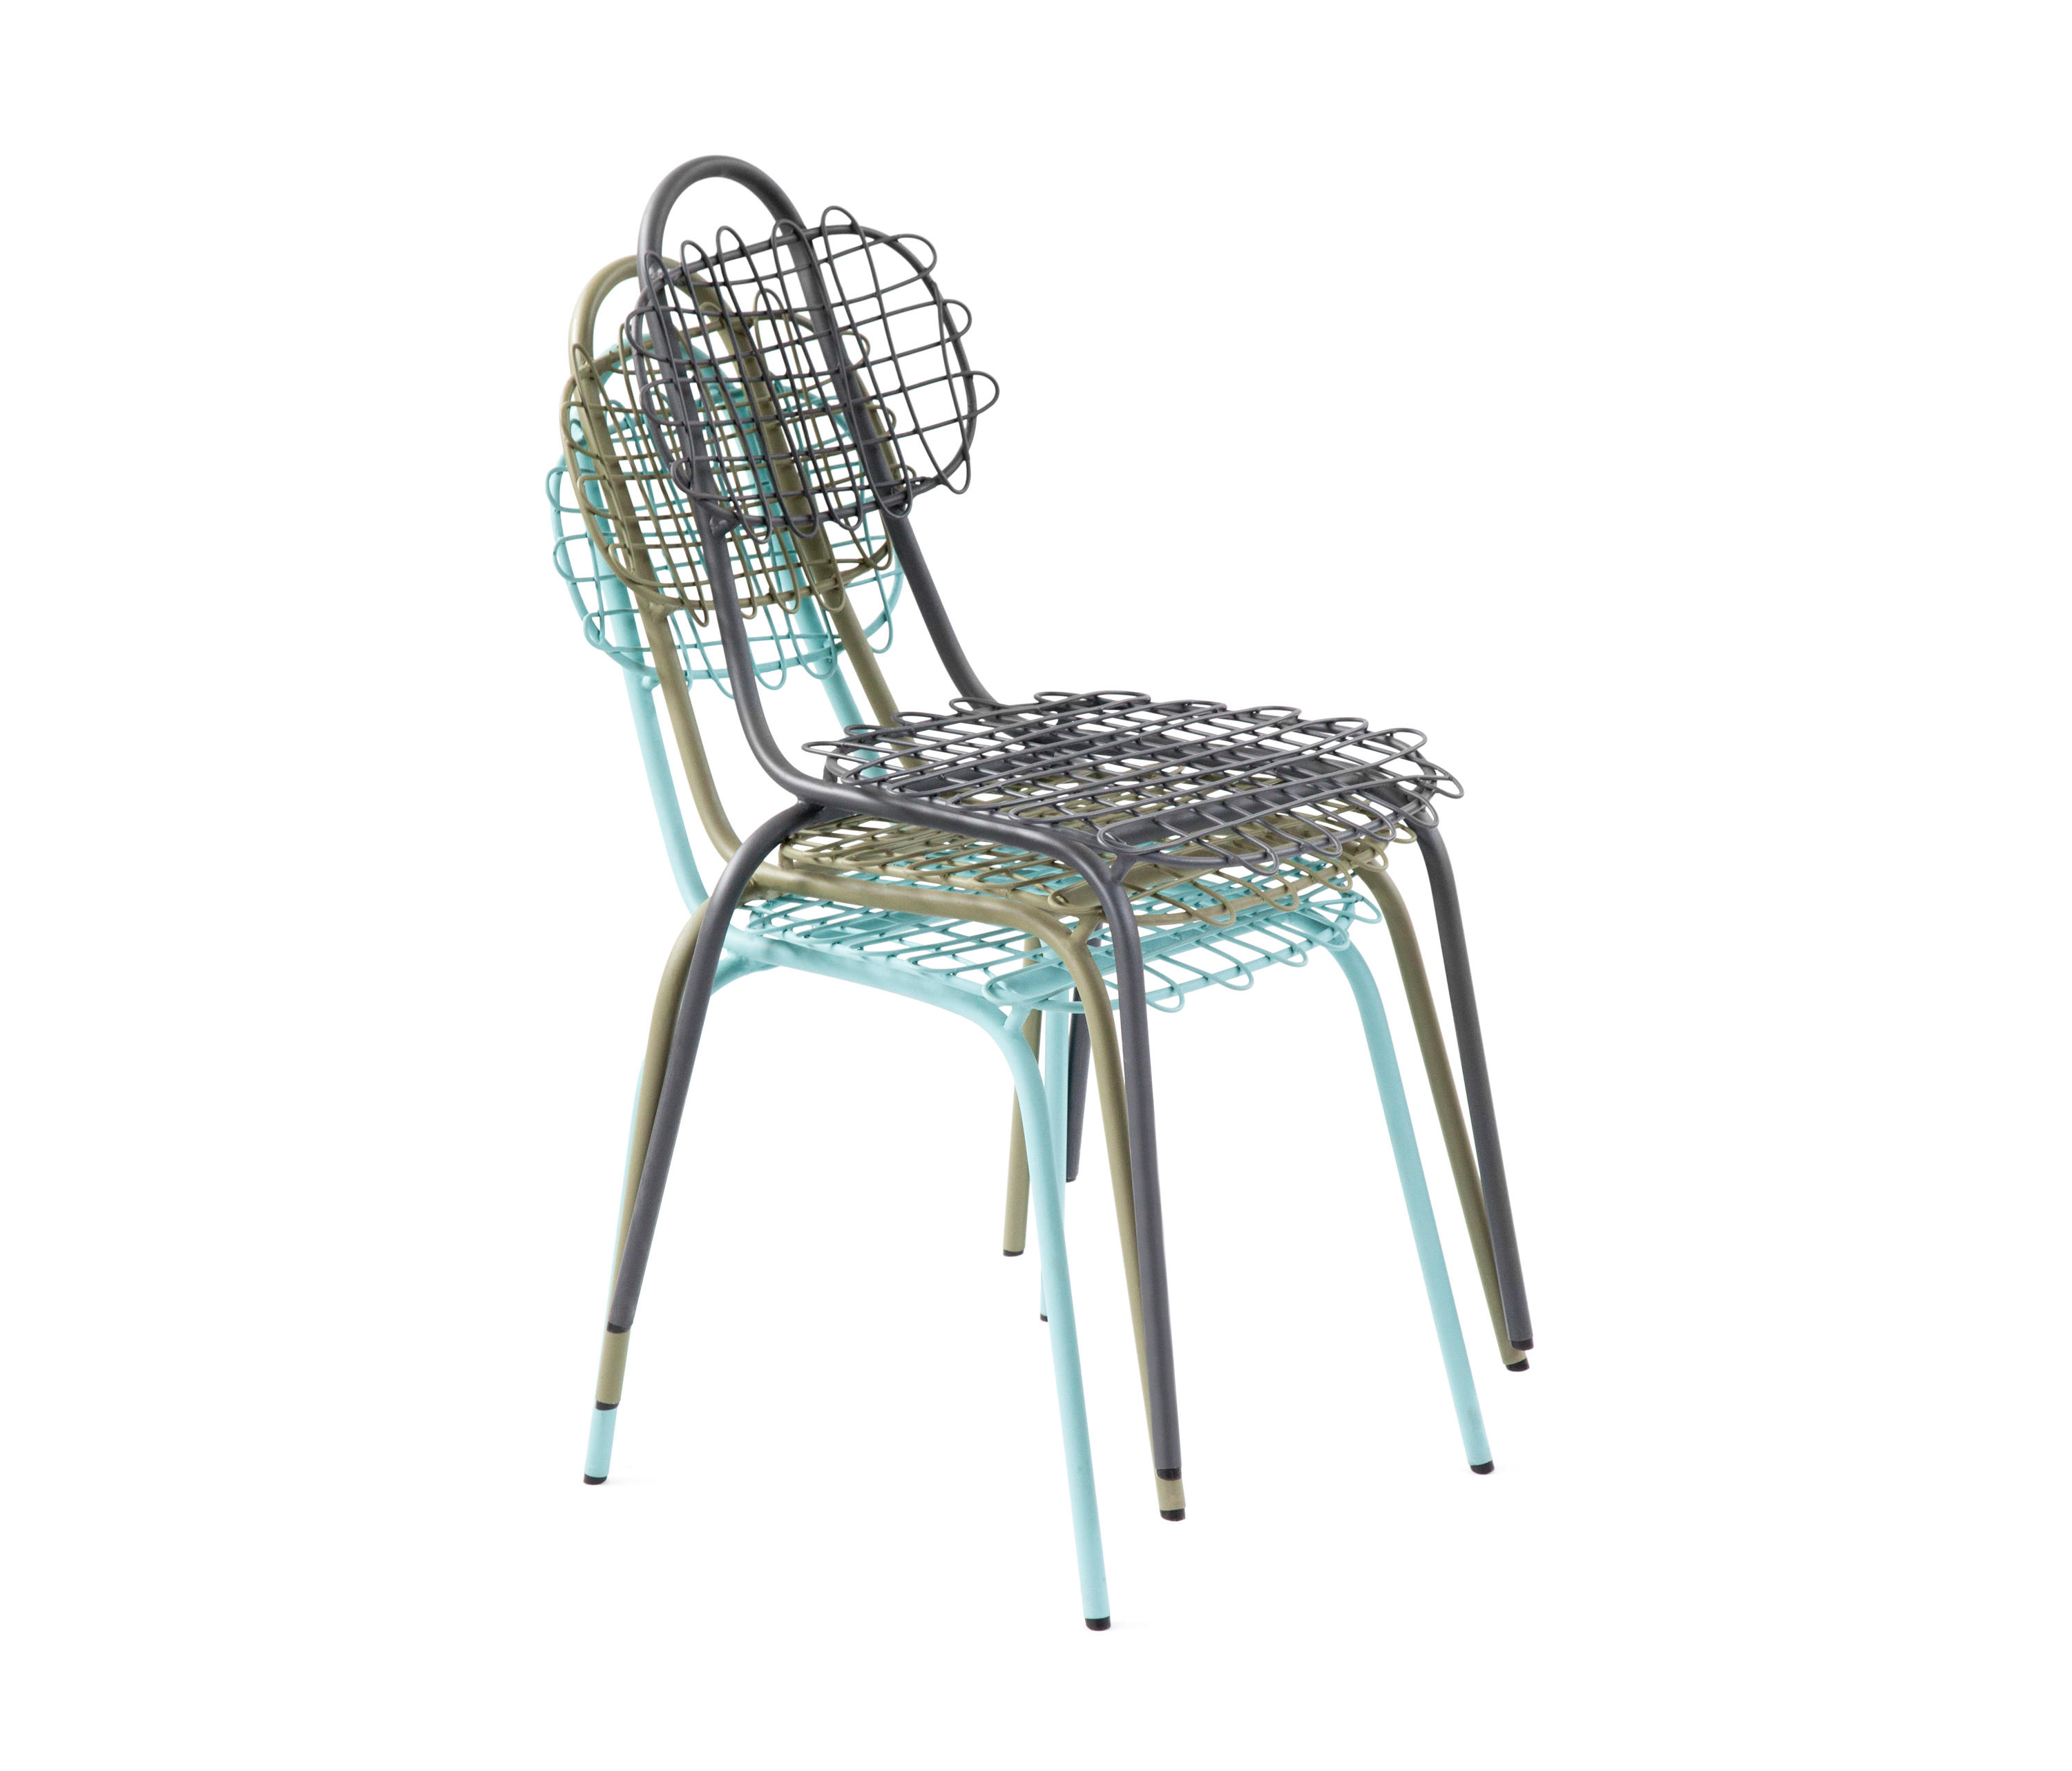 Sketch Chair Chairs From Jspr Architonic